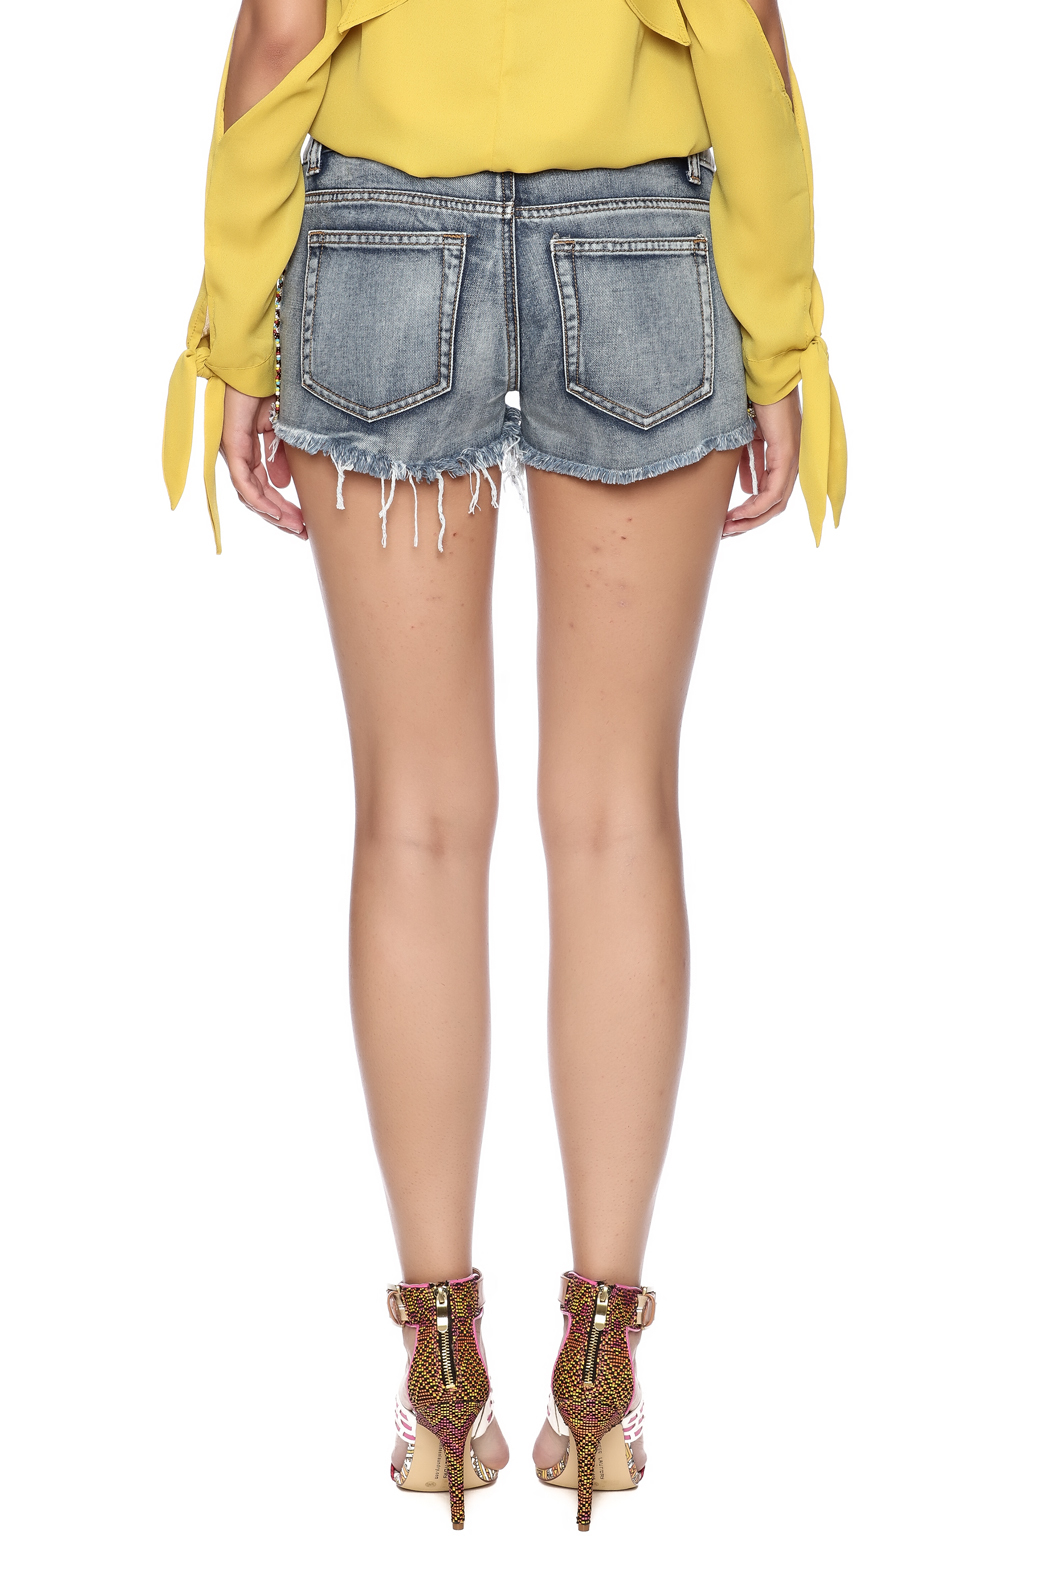 Others Follow  Willow Cut Off Shorts - Back Cropped Image